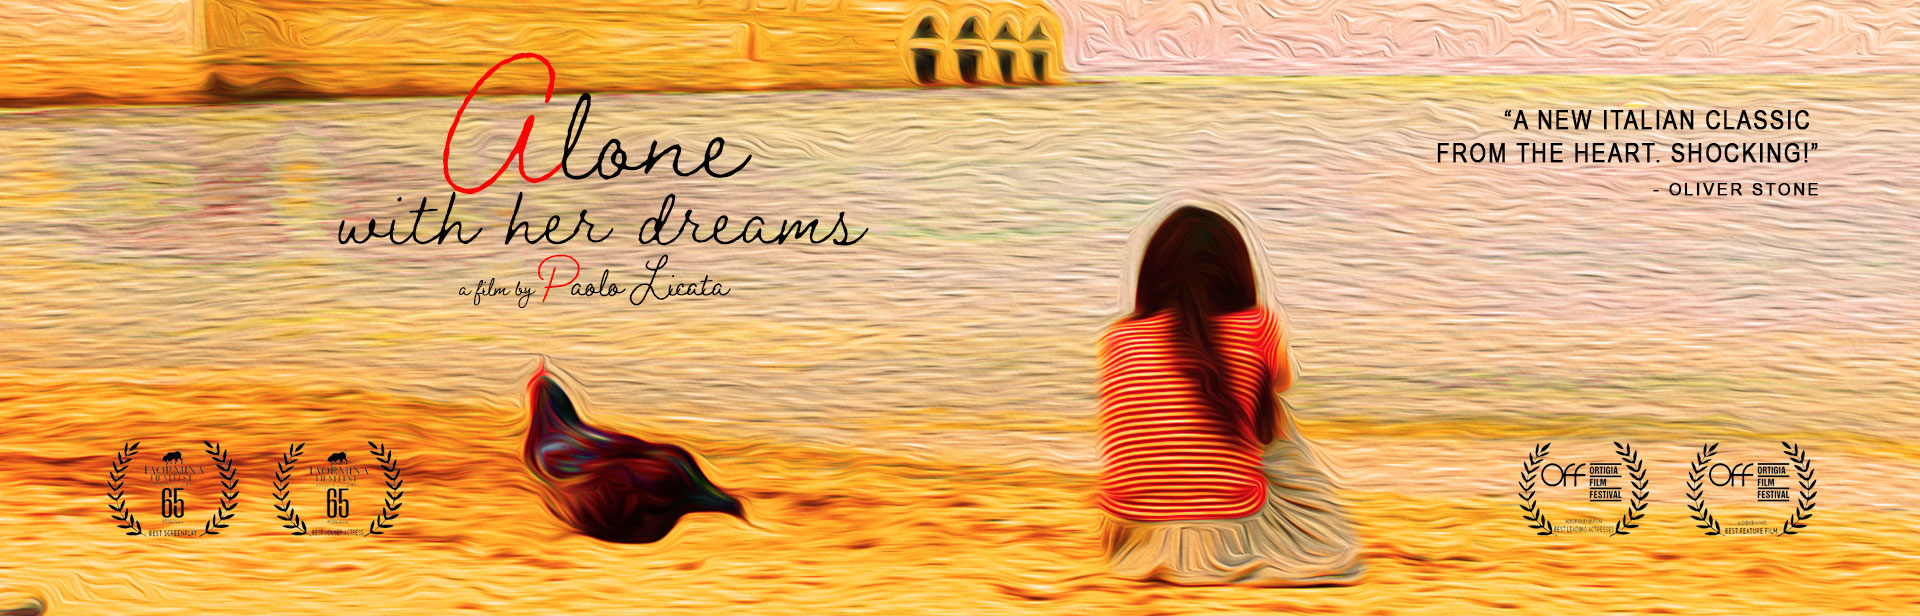 Alone With Her Dreams banner